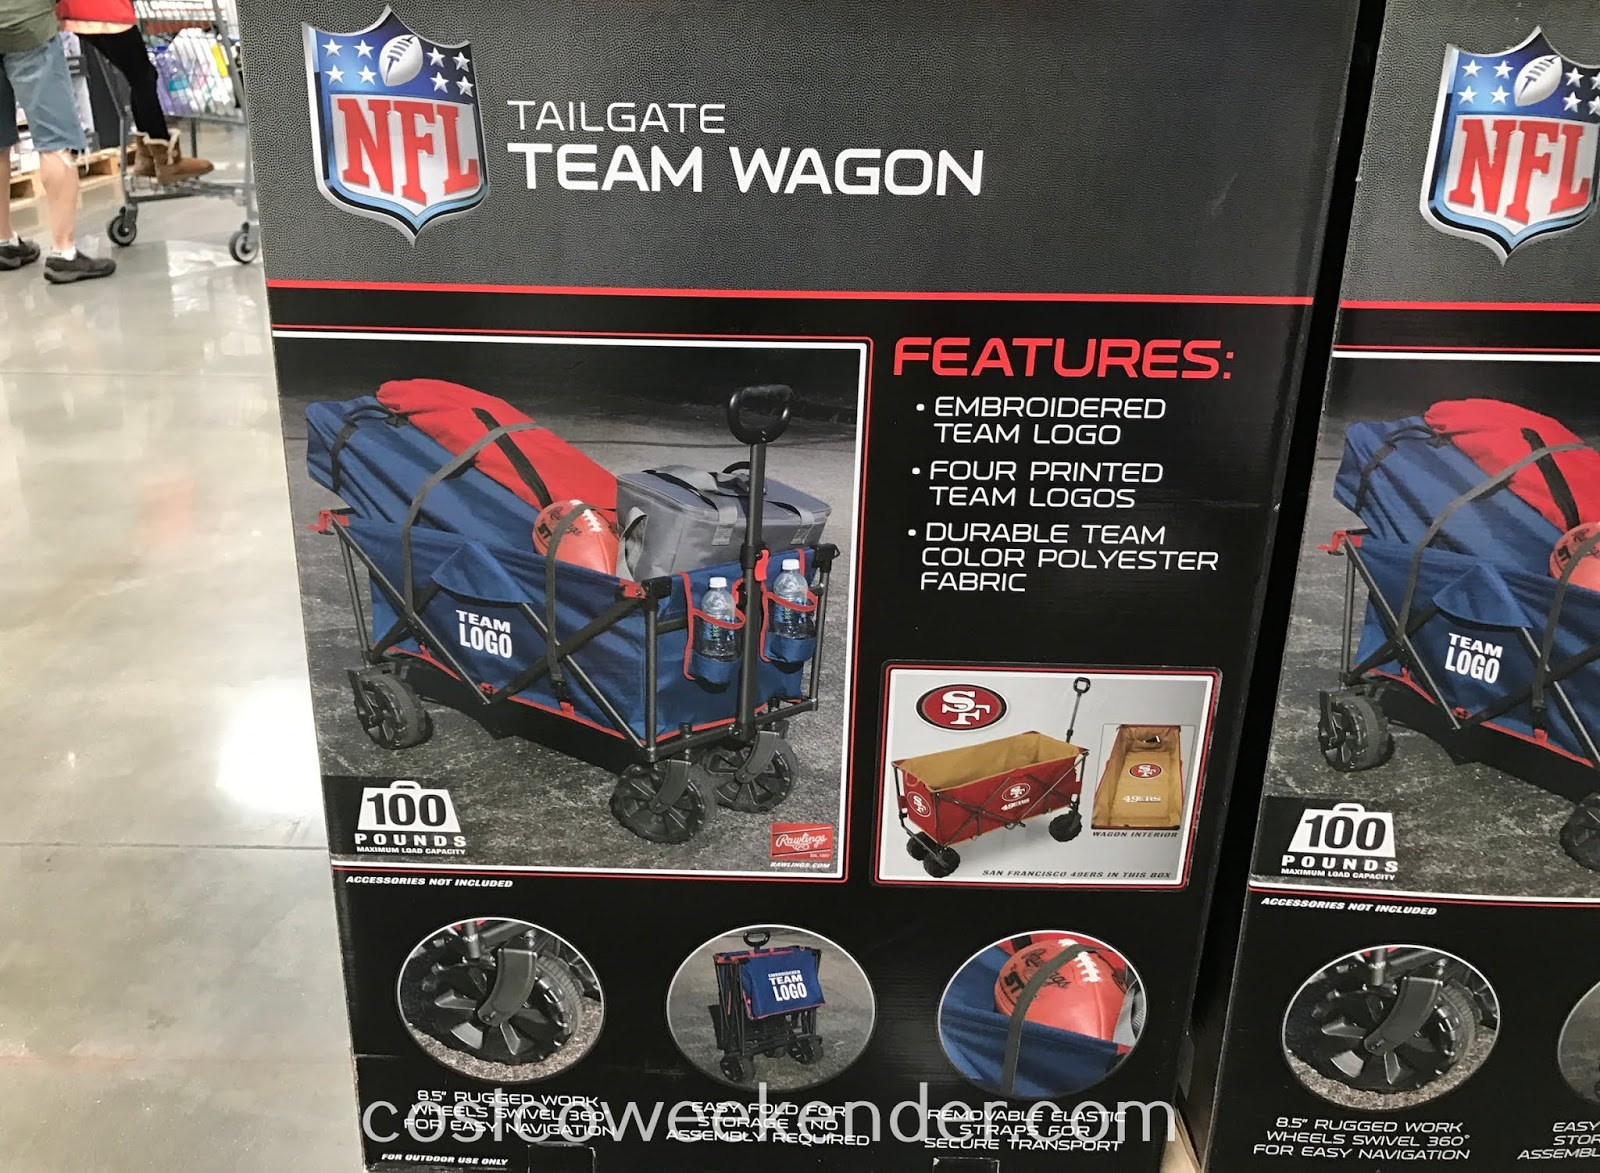 Costco 1233104 - Rawlings Tailgate Team Wagon: great for picnics in the park, tailgating at a game, or a day at the beach